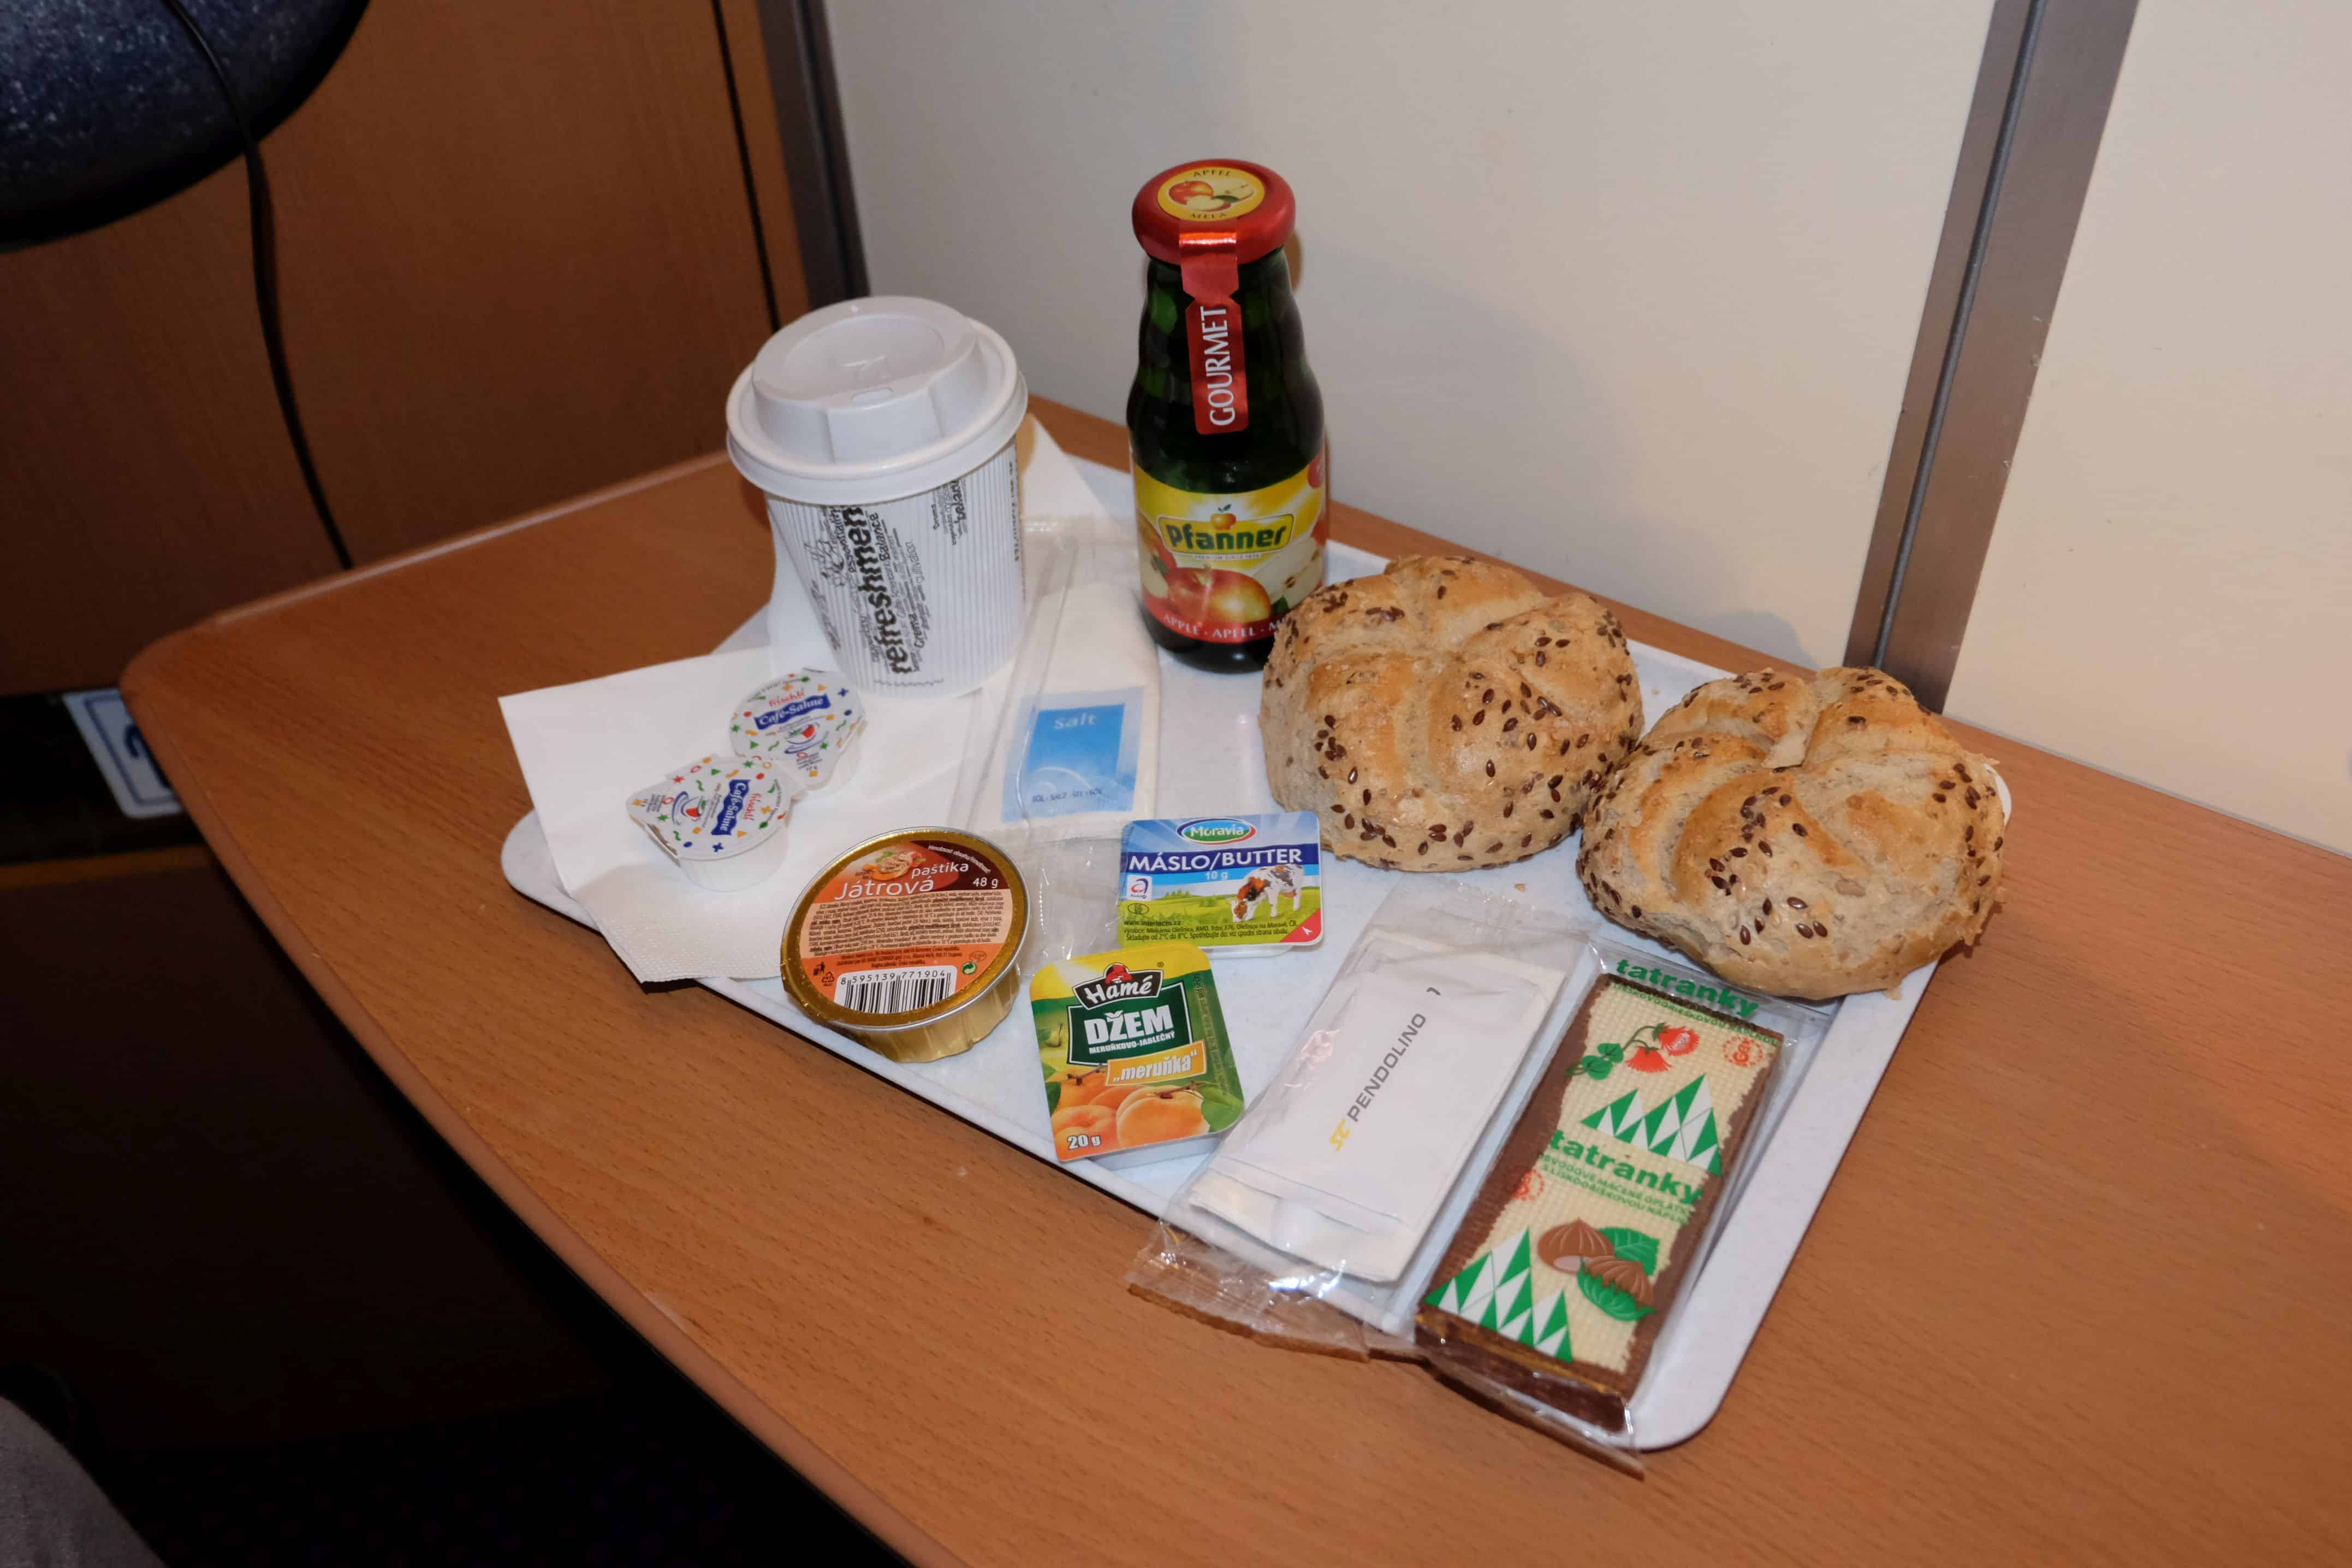 Breakfast is included for sleeping car passengers.